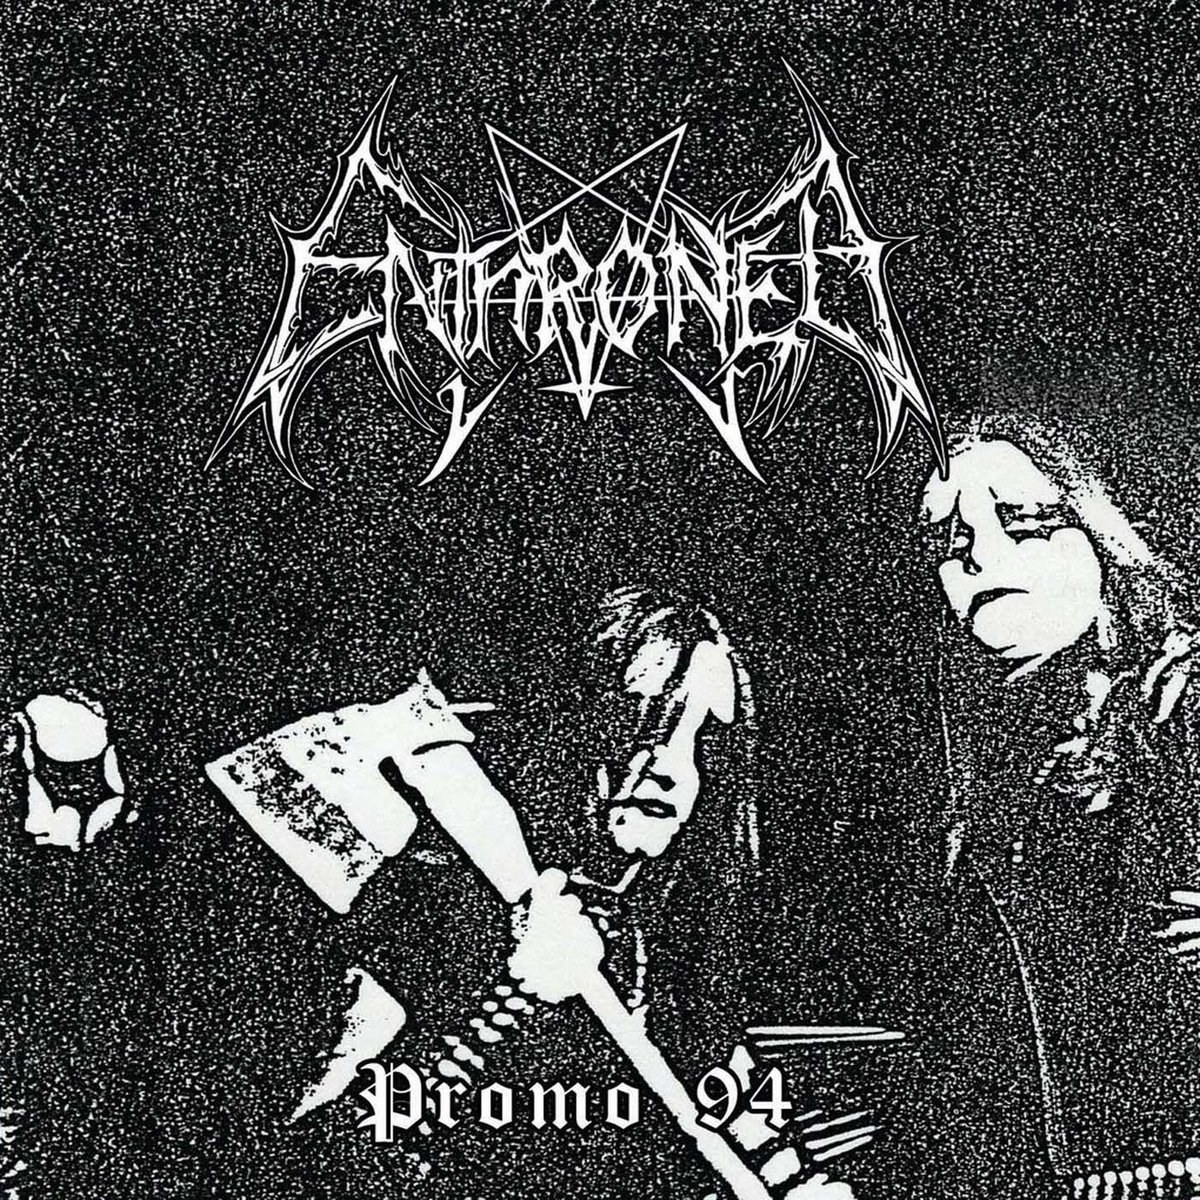 Enthroned - Promo 94